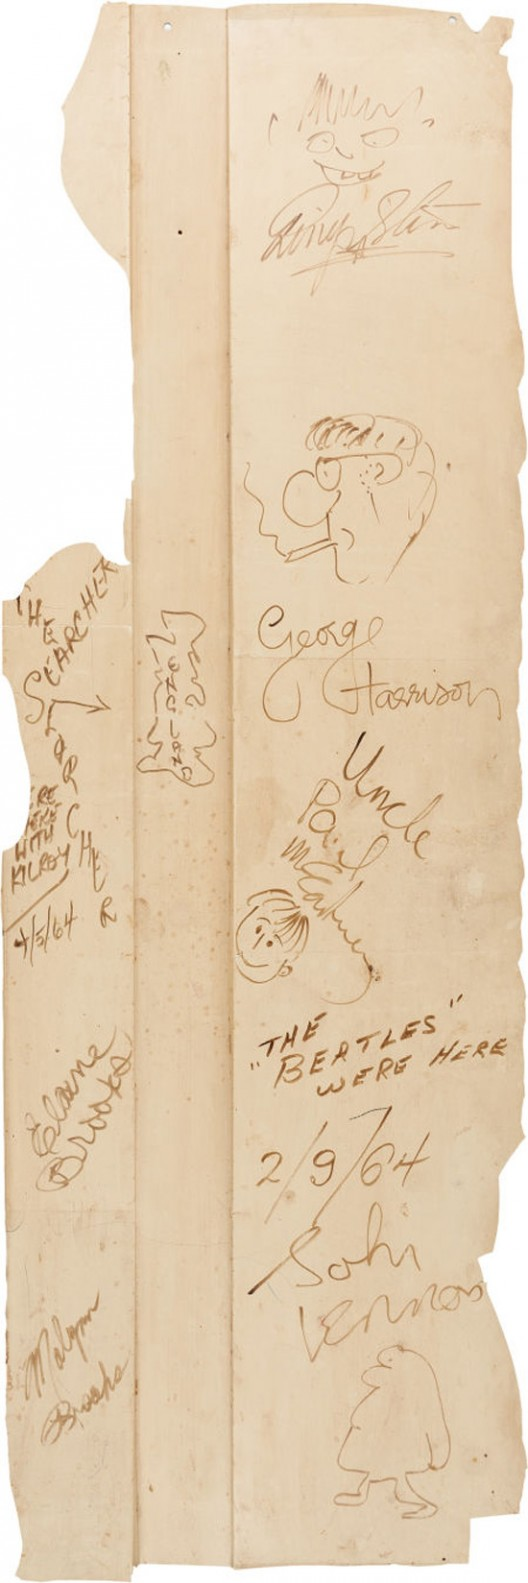 Beatles-Signed Backdrop From Their First The Ed Sullivan Show Appearance Emerges At Auction 50 Years Later